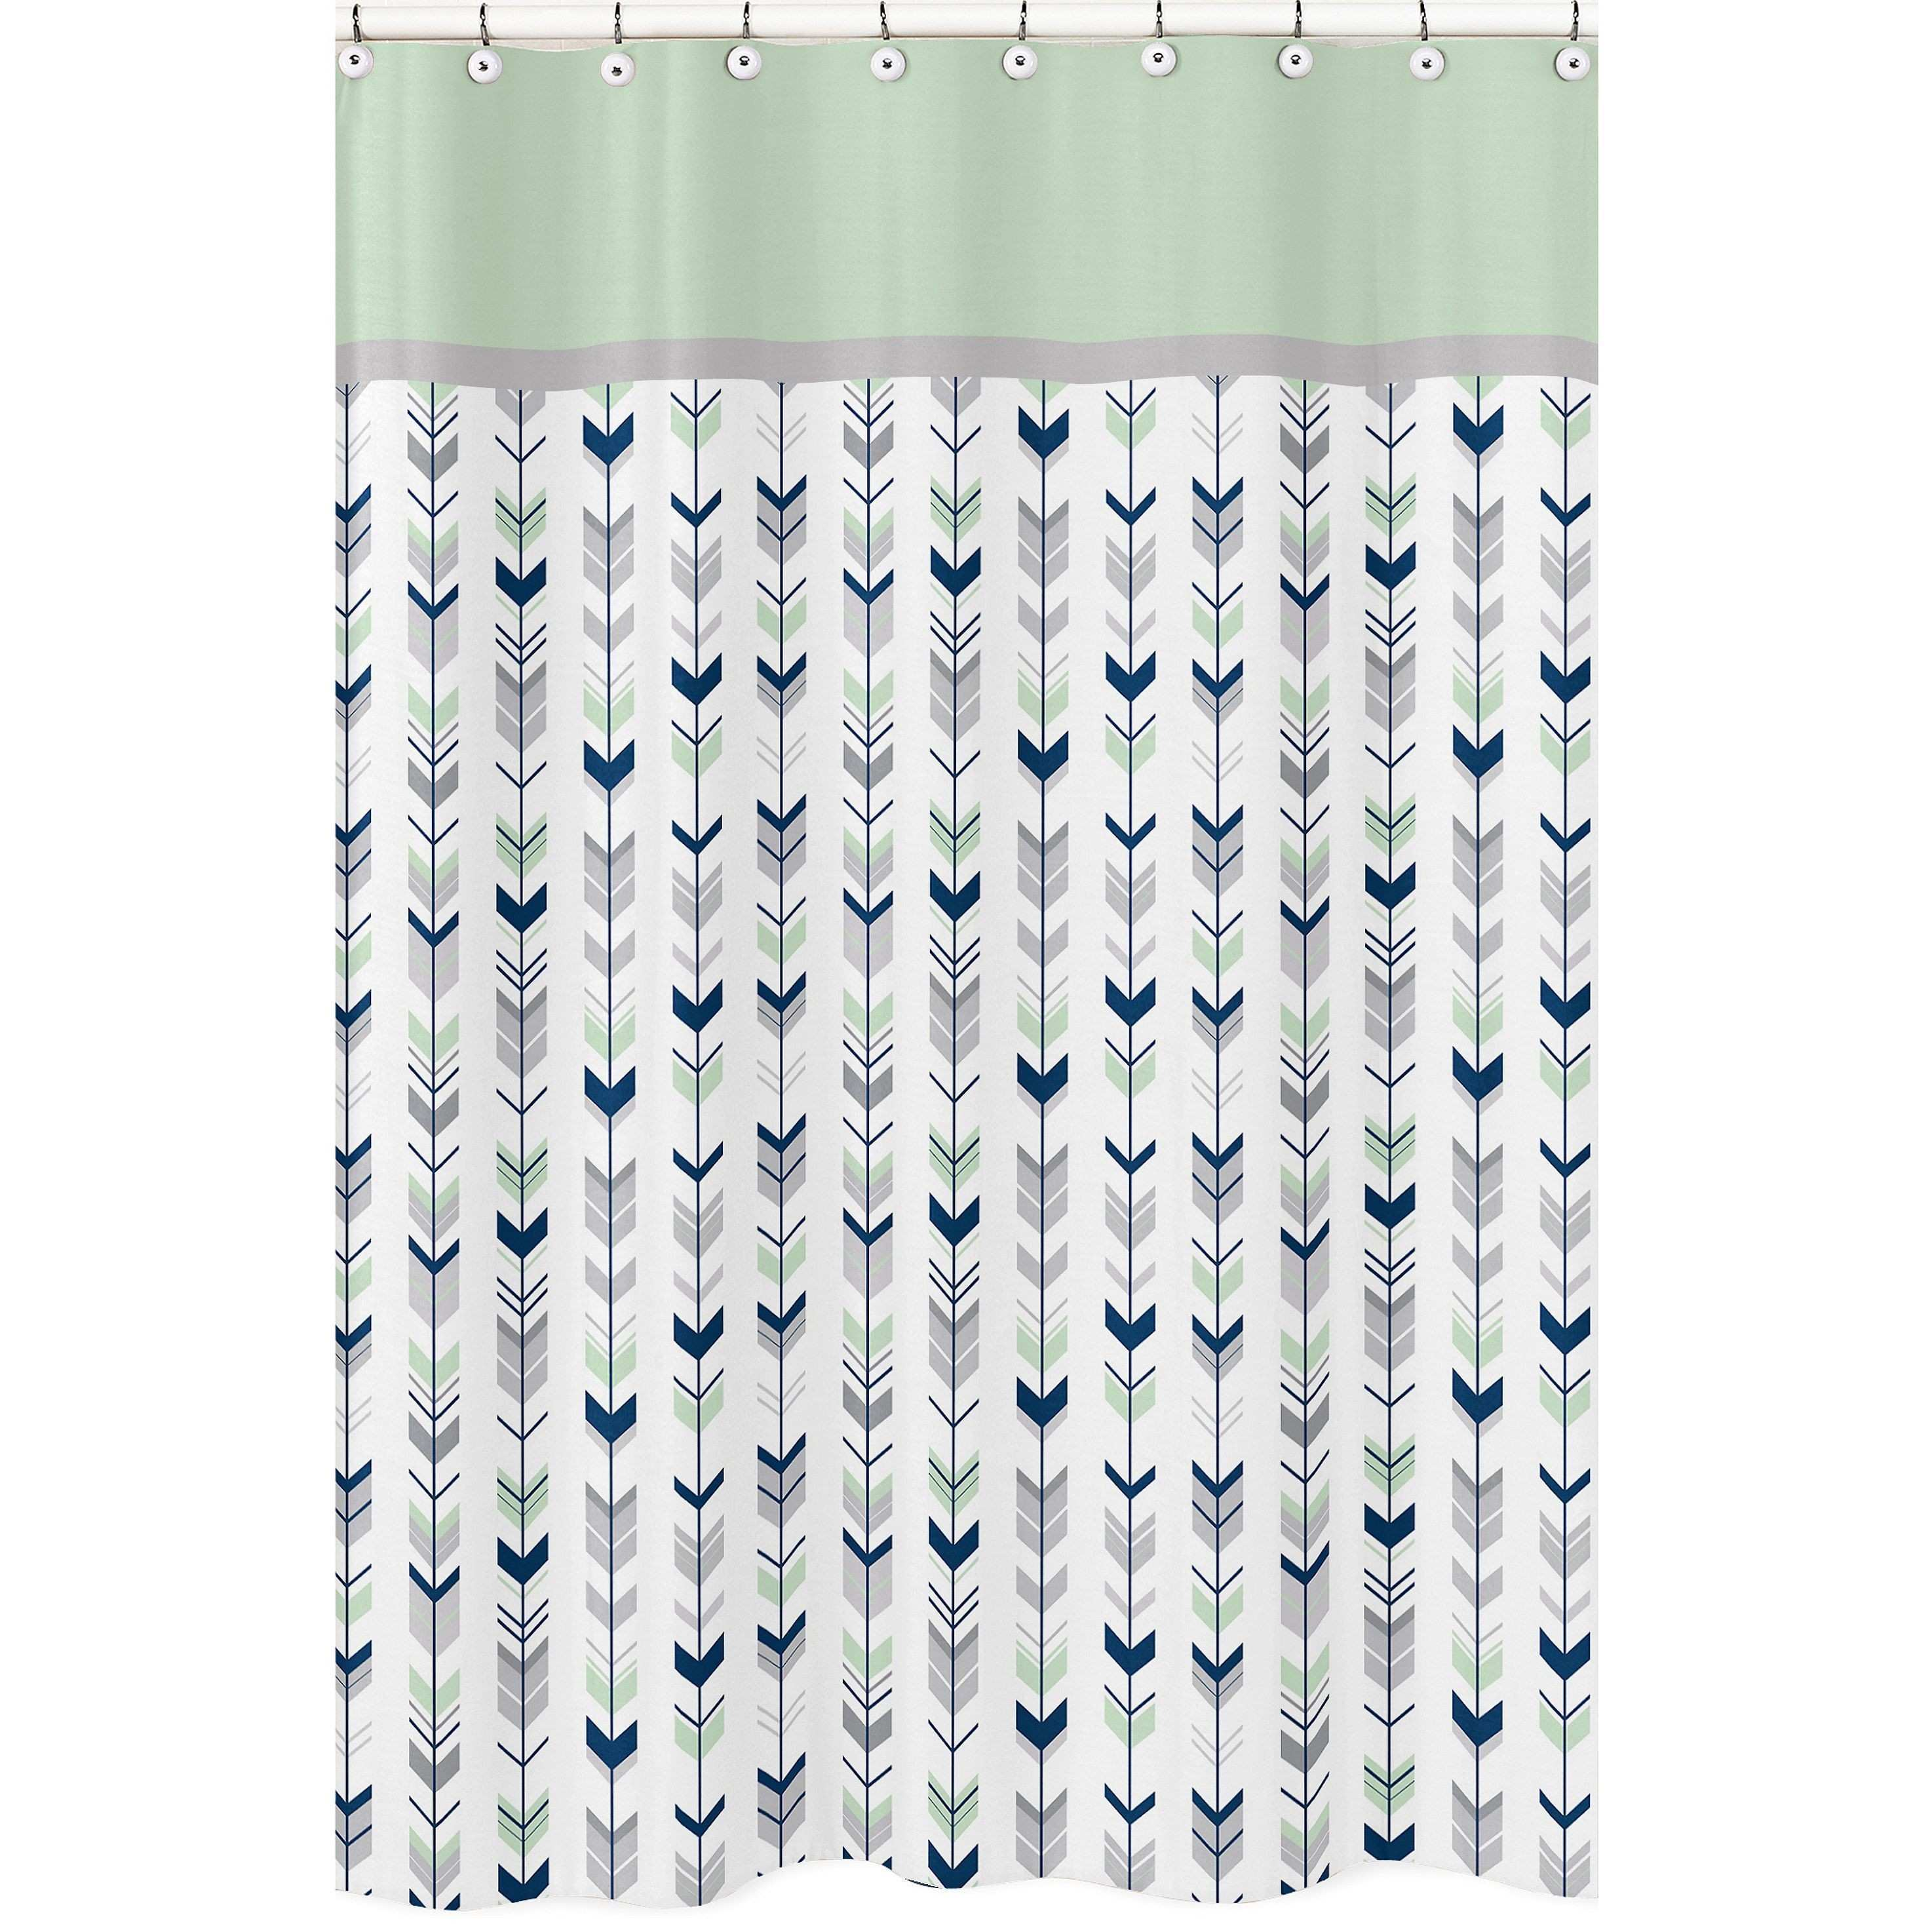 Give your bathroom a makeover in minutes with this blue green and